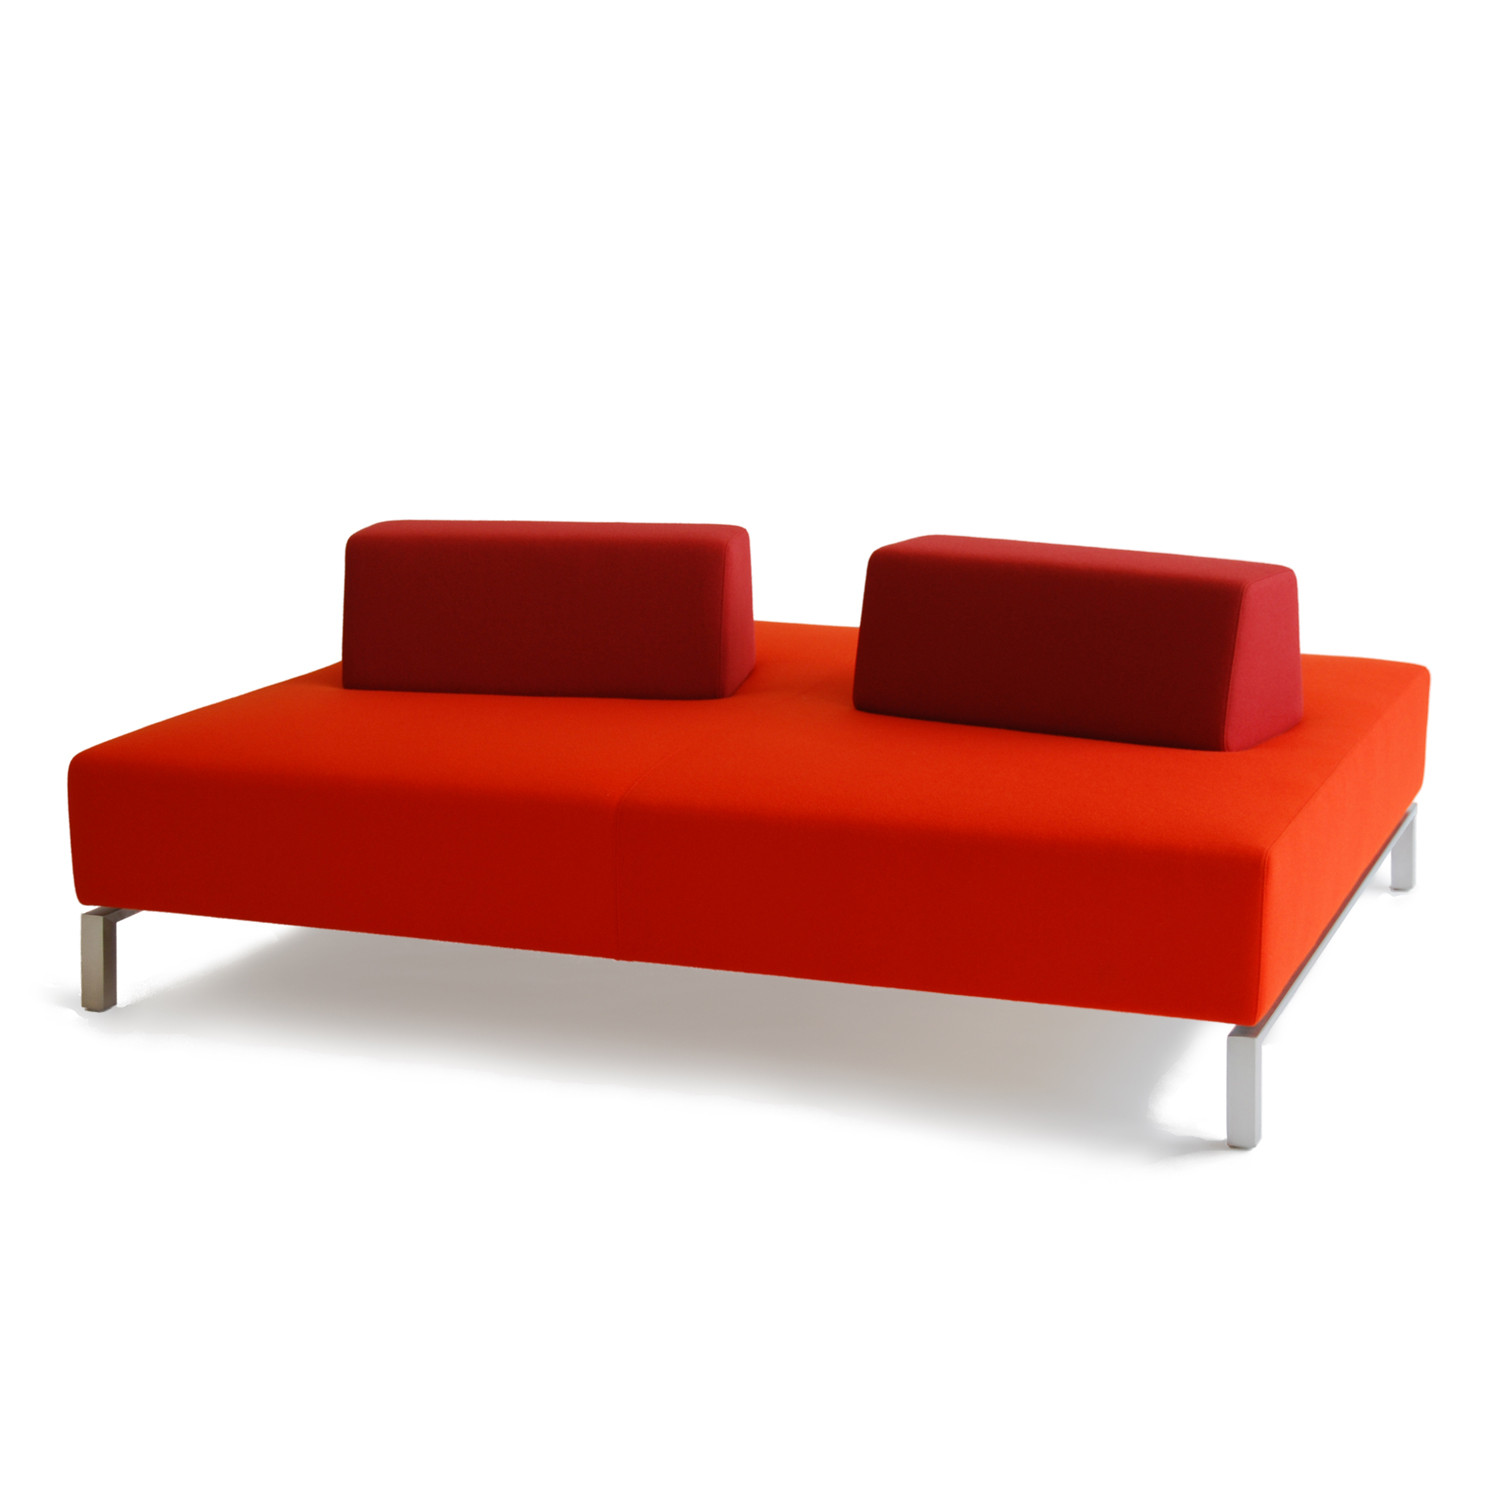 Hm93 Double Sided Sofa